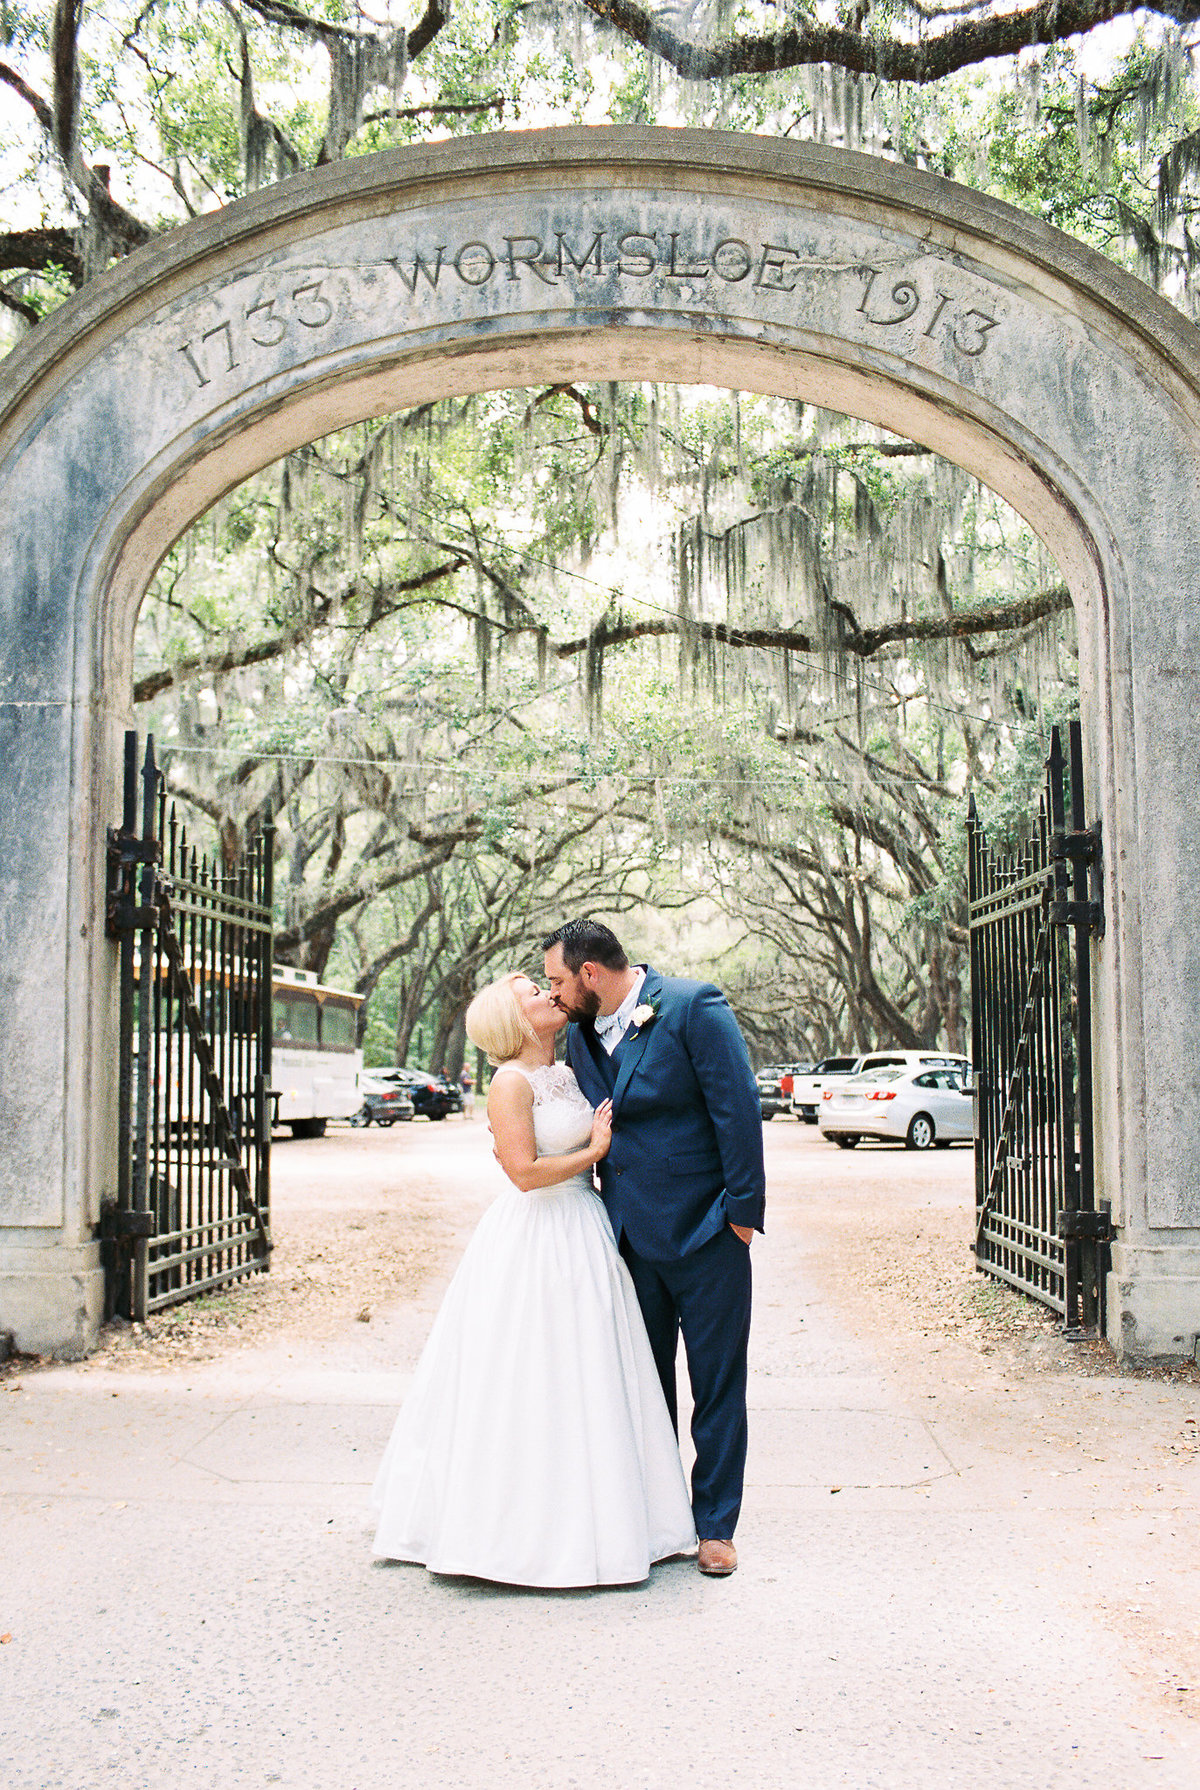 Savannah-Georgia-Wedding-Photographer-Holly-Felts-Photography-Wilmon-Wedding-86